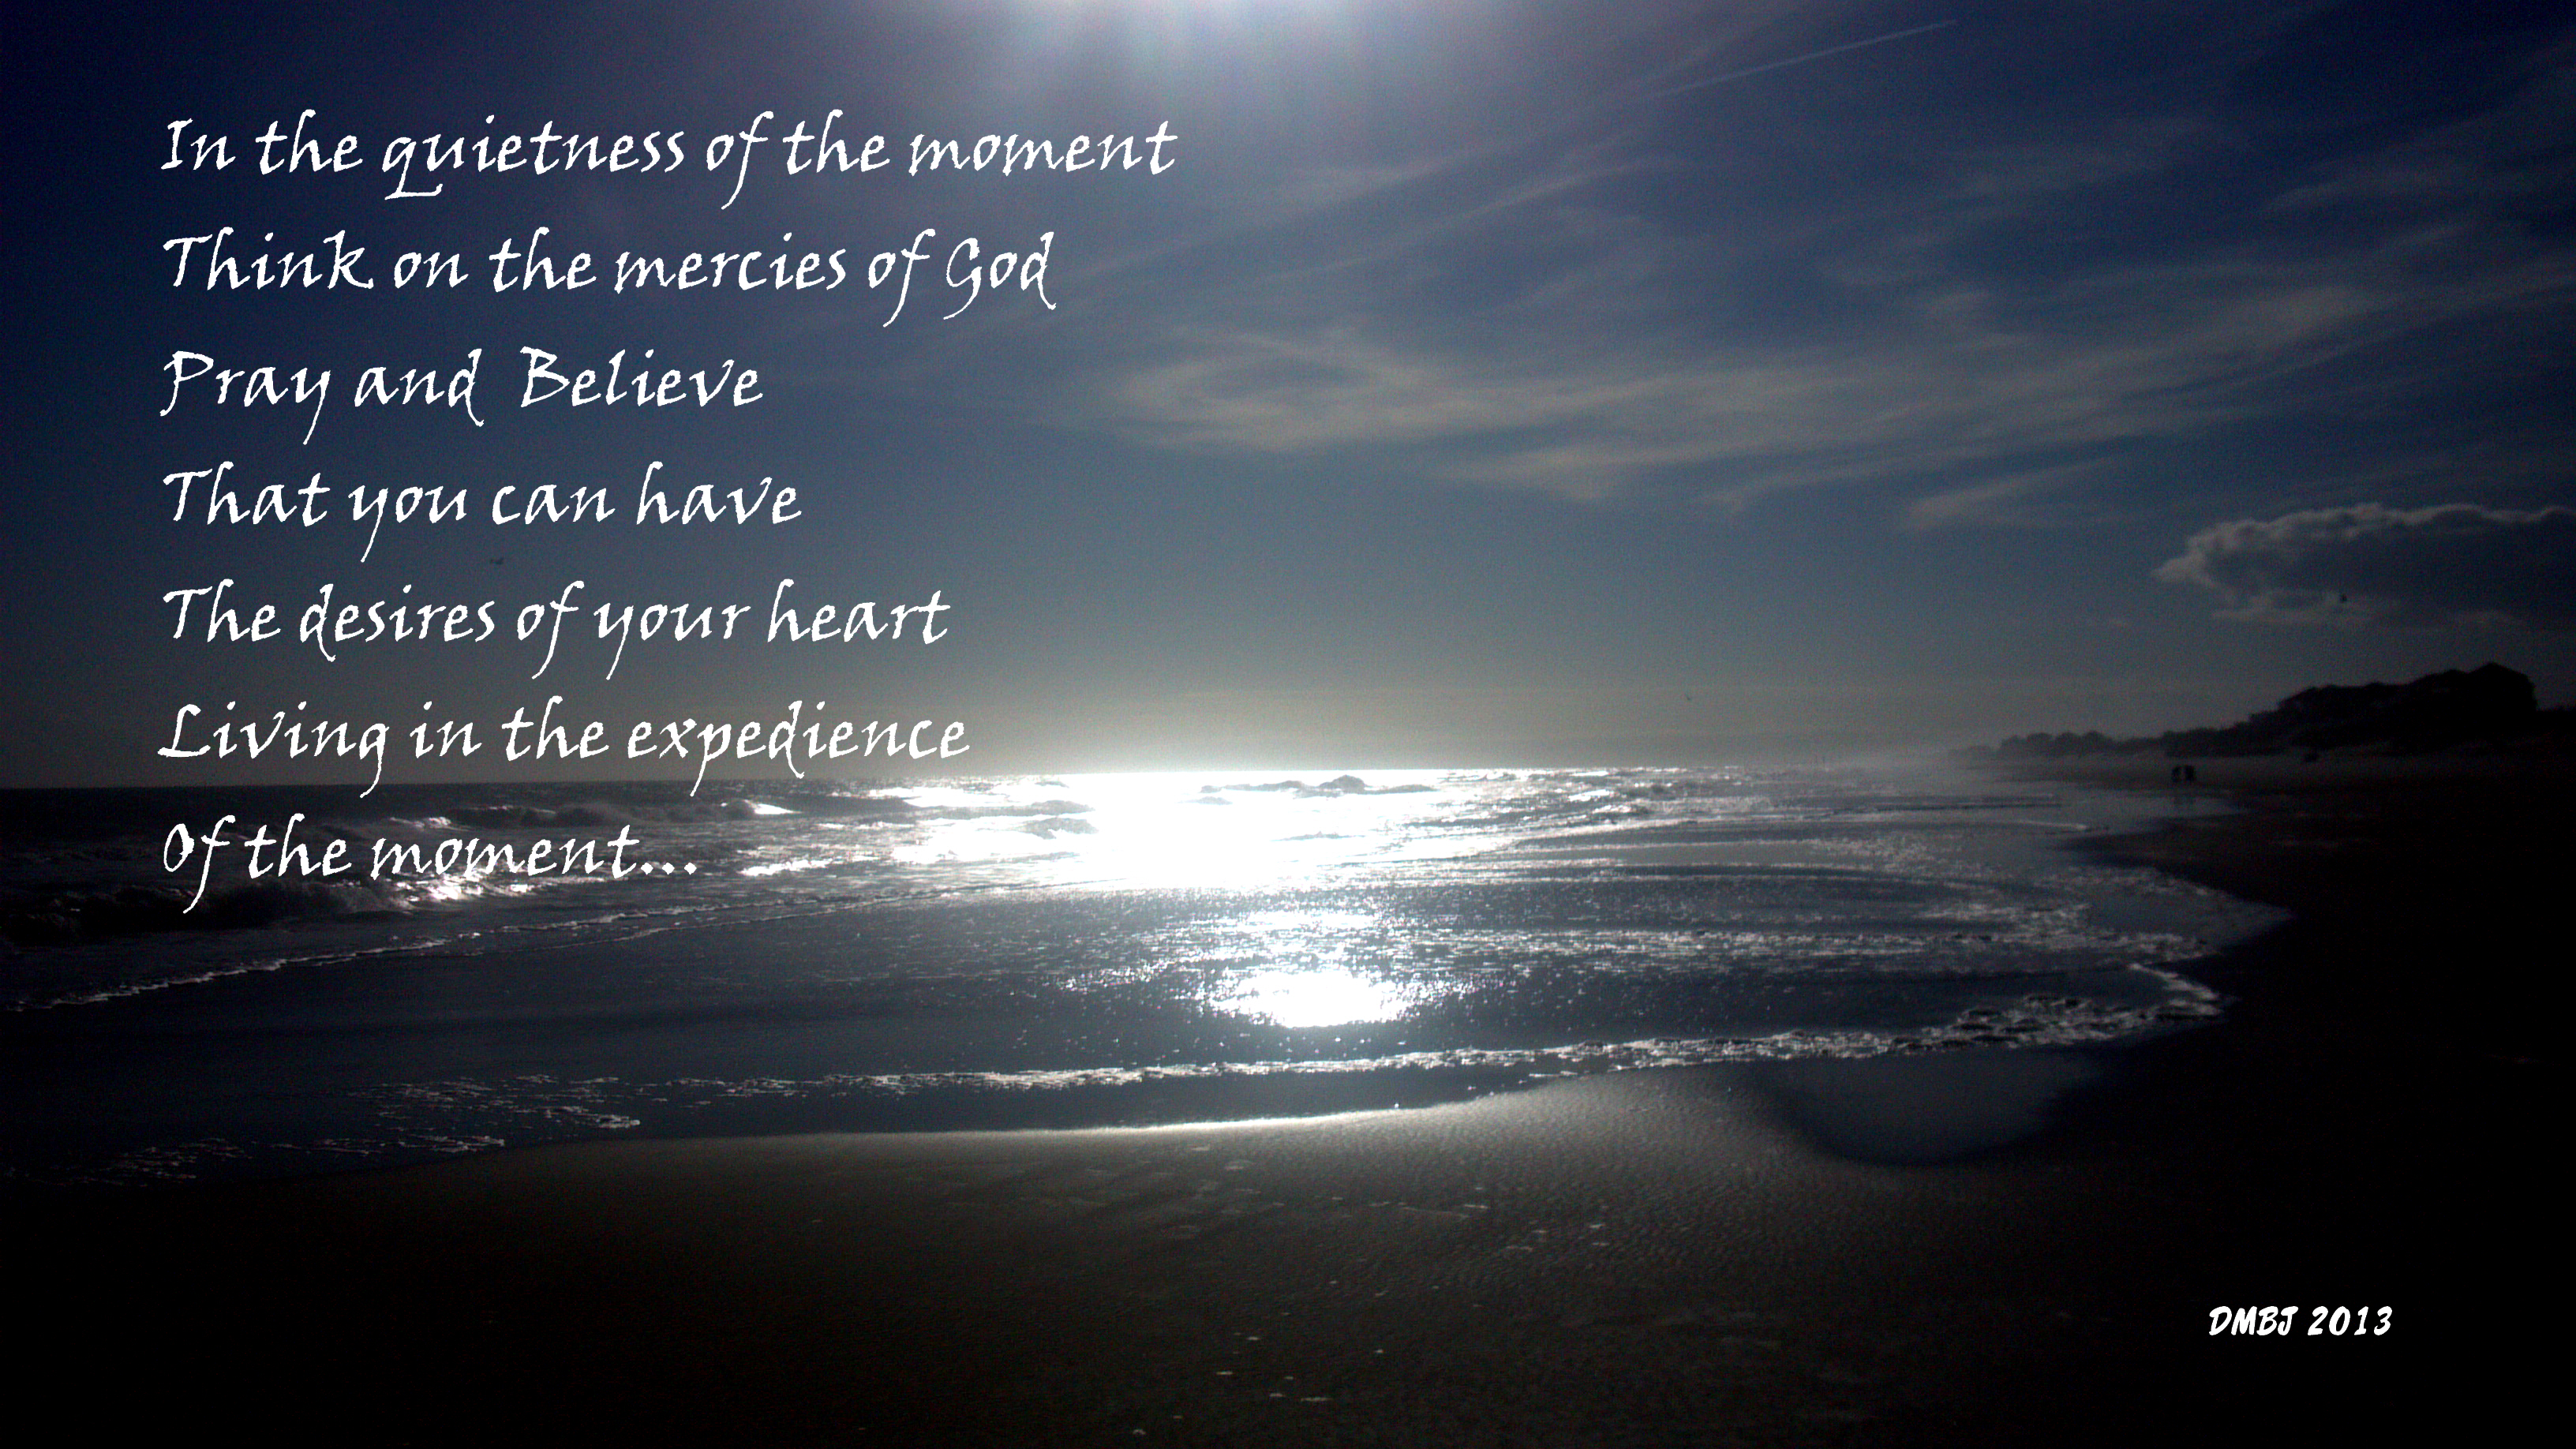 LIVING IN THE QUIETNESS OF THE MOMENT (Photo by Pastor Davis)